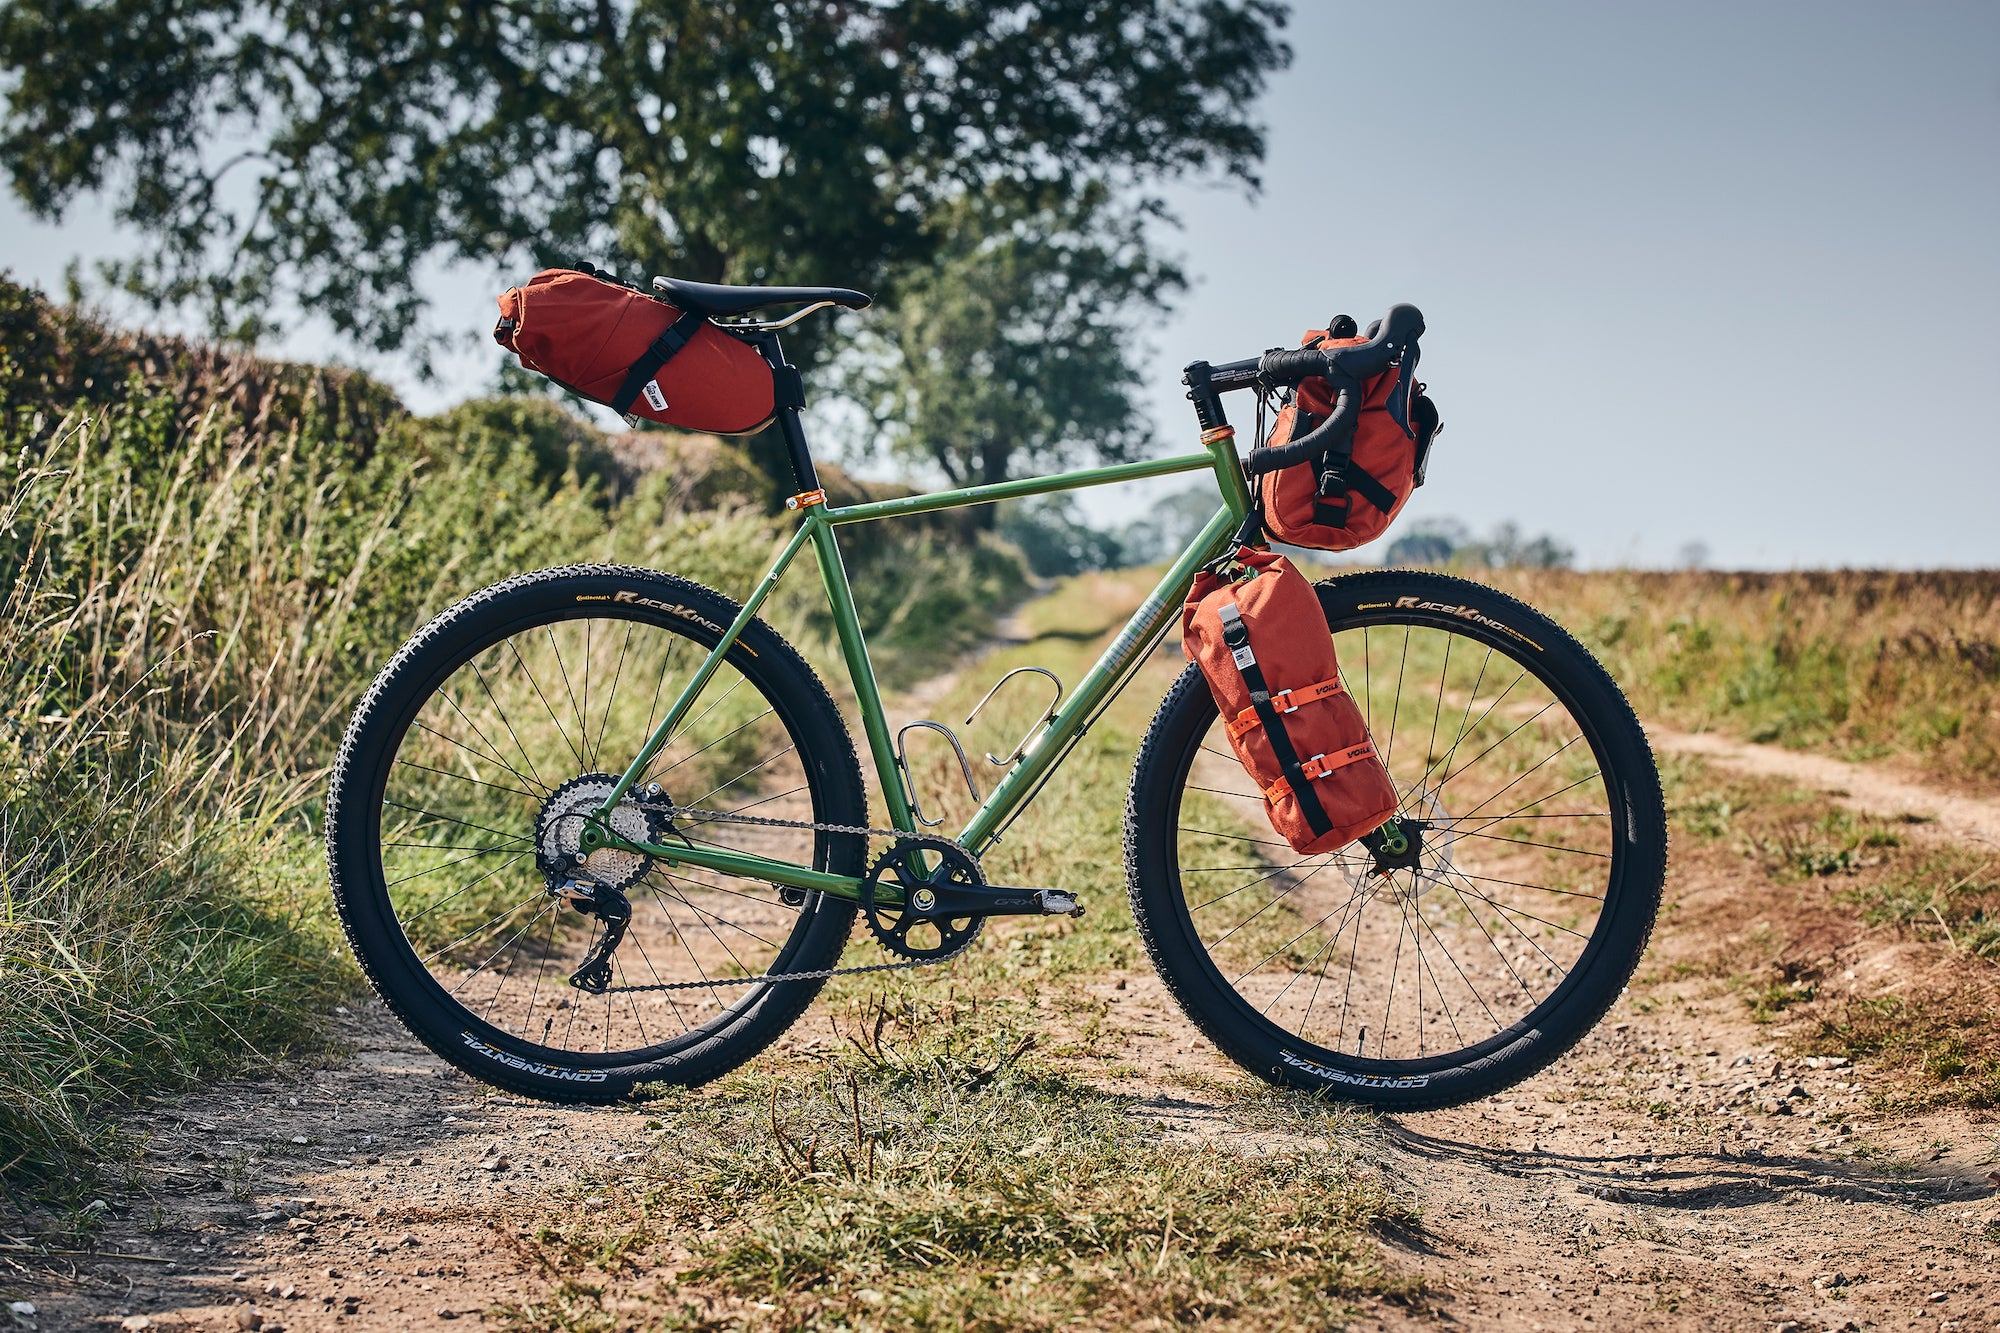 Fairlight LS1 Gravel Bike with Road Runner Bikepacking Bags